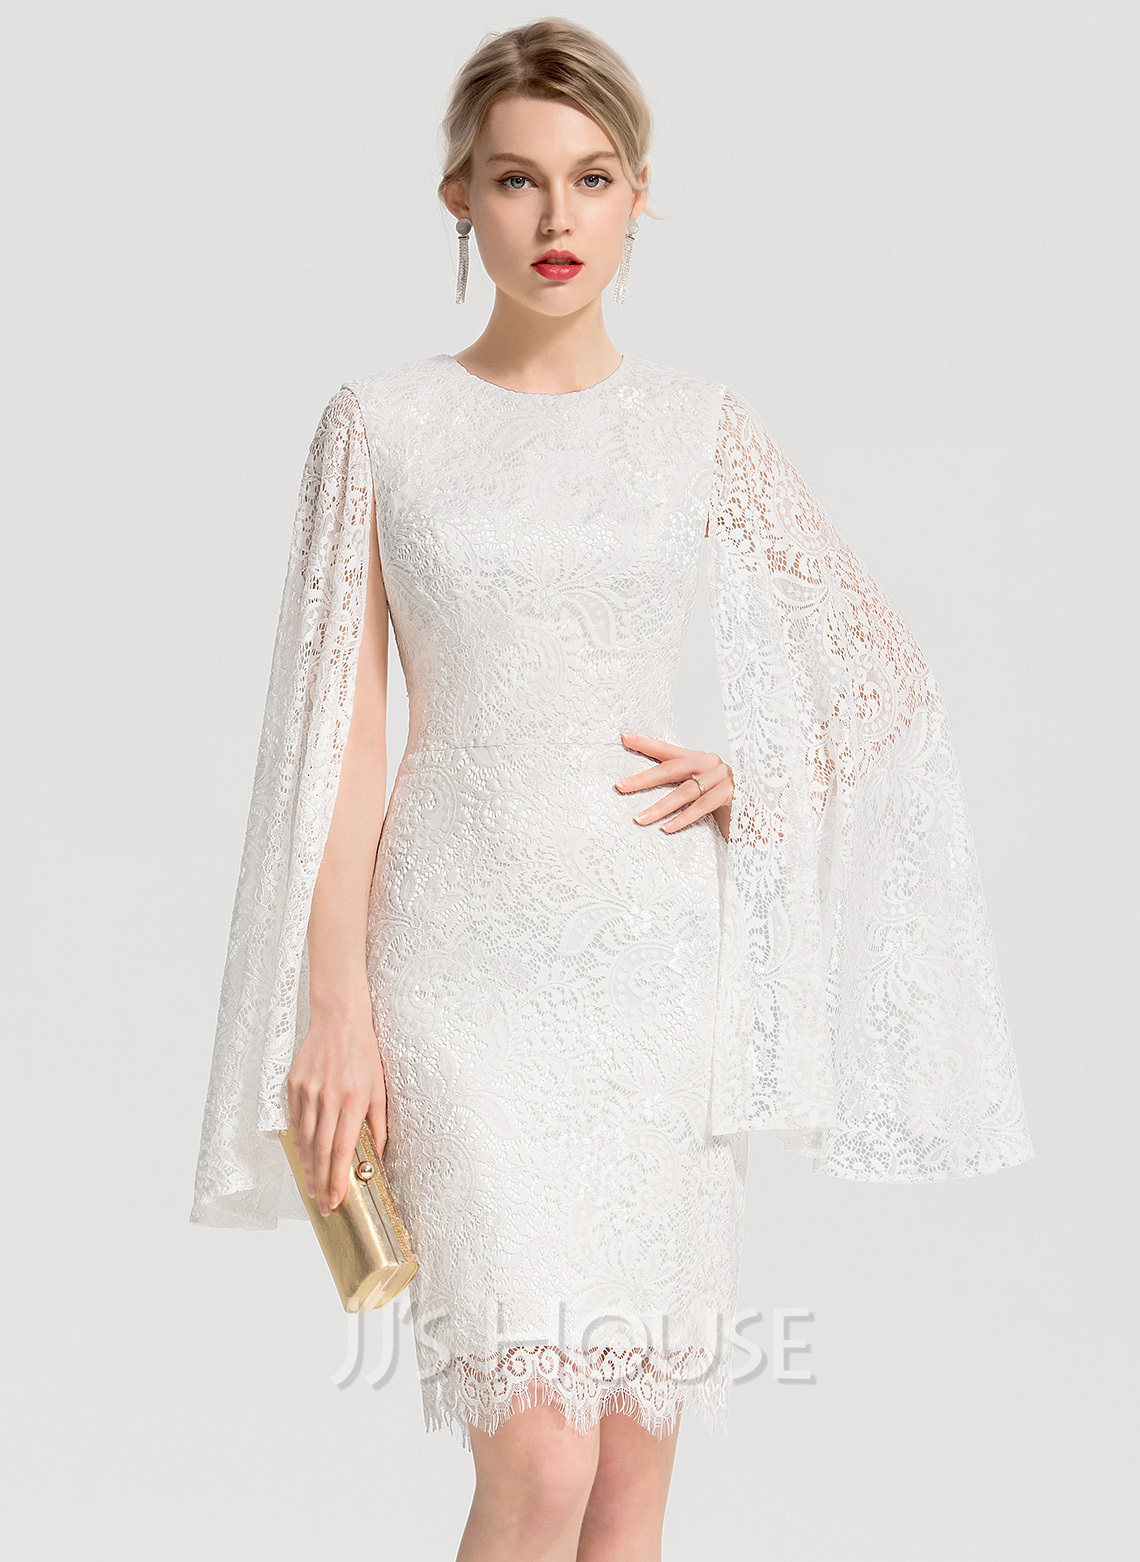 Sheath/Column Scoop Neck Knee-Length Lace Wedding Dress